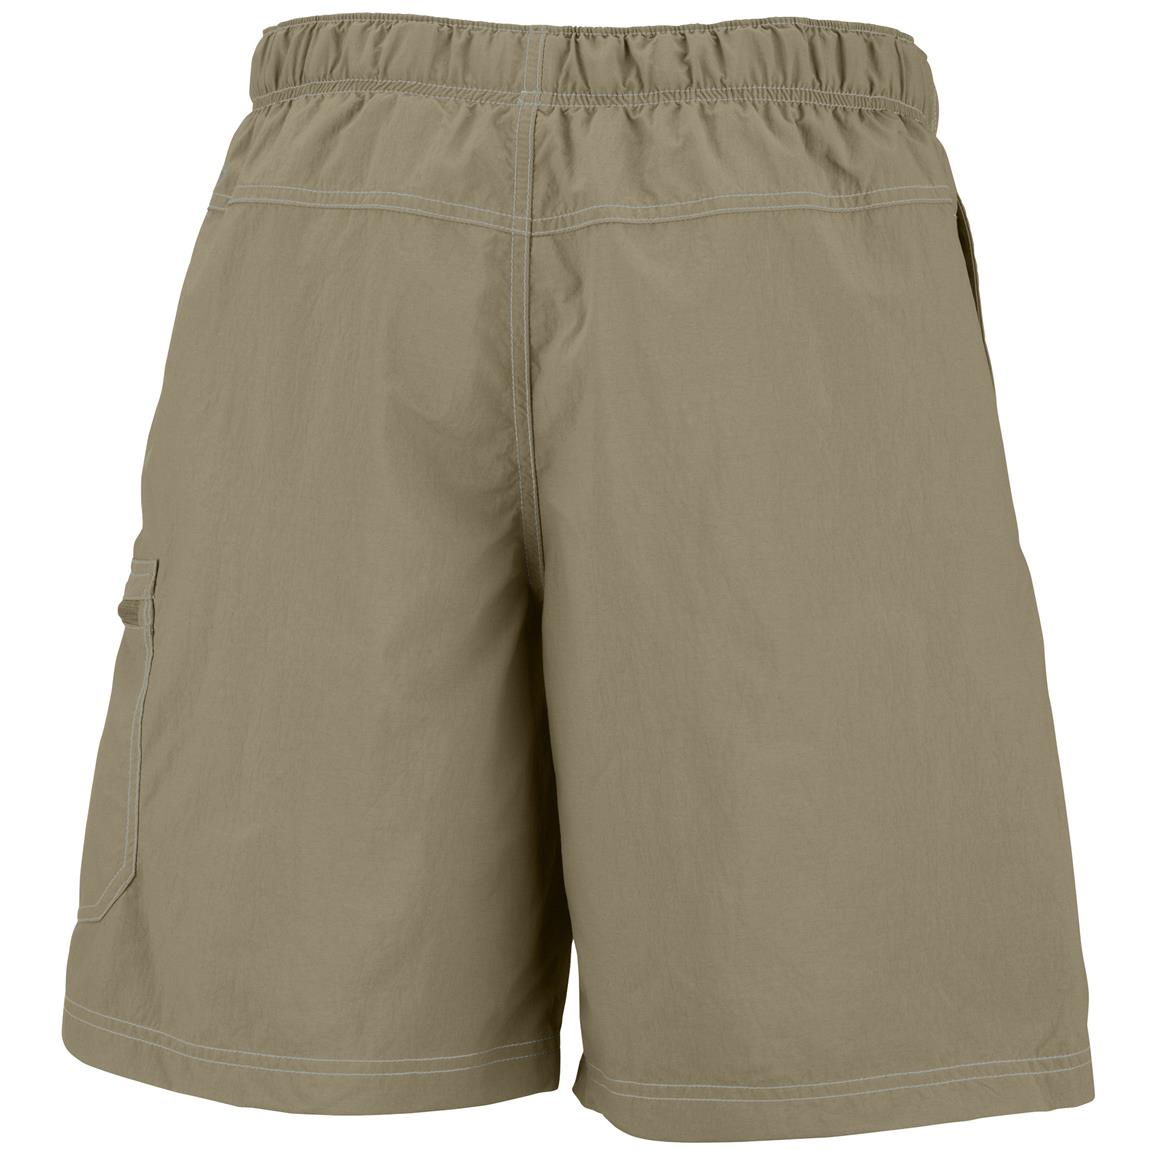 Columbia Men's Palmerston Peak Water Shorts, Twill • Back